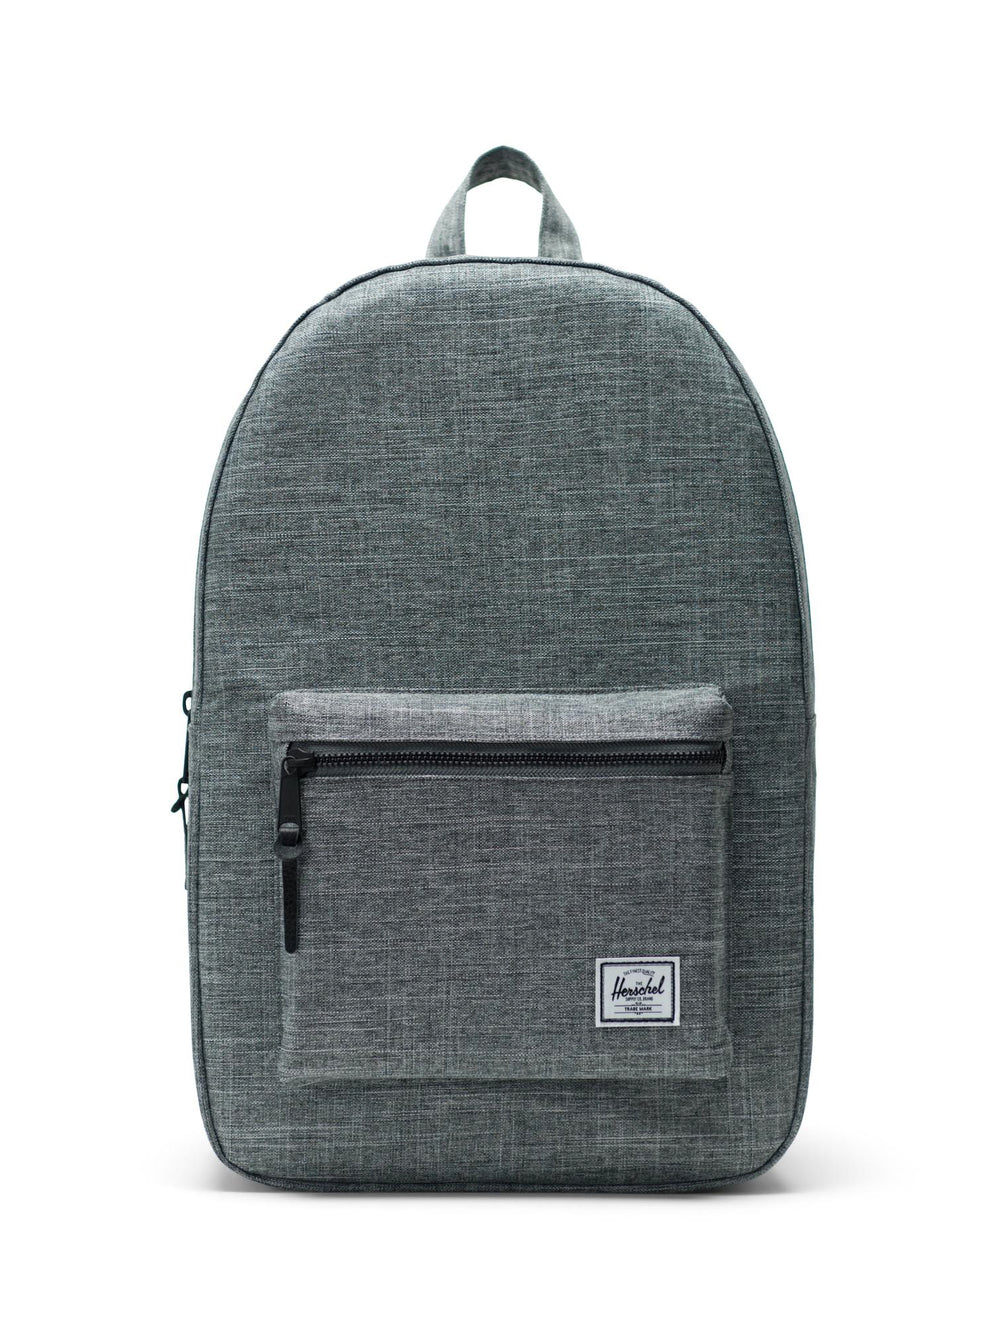 c6a0a88e1e4 SETTLEMENT 23L BACKPACK